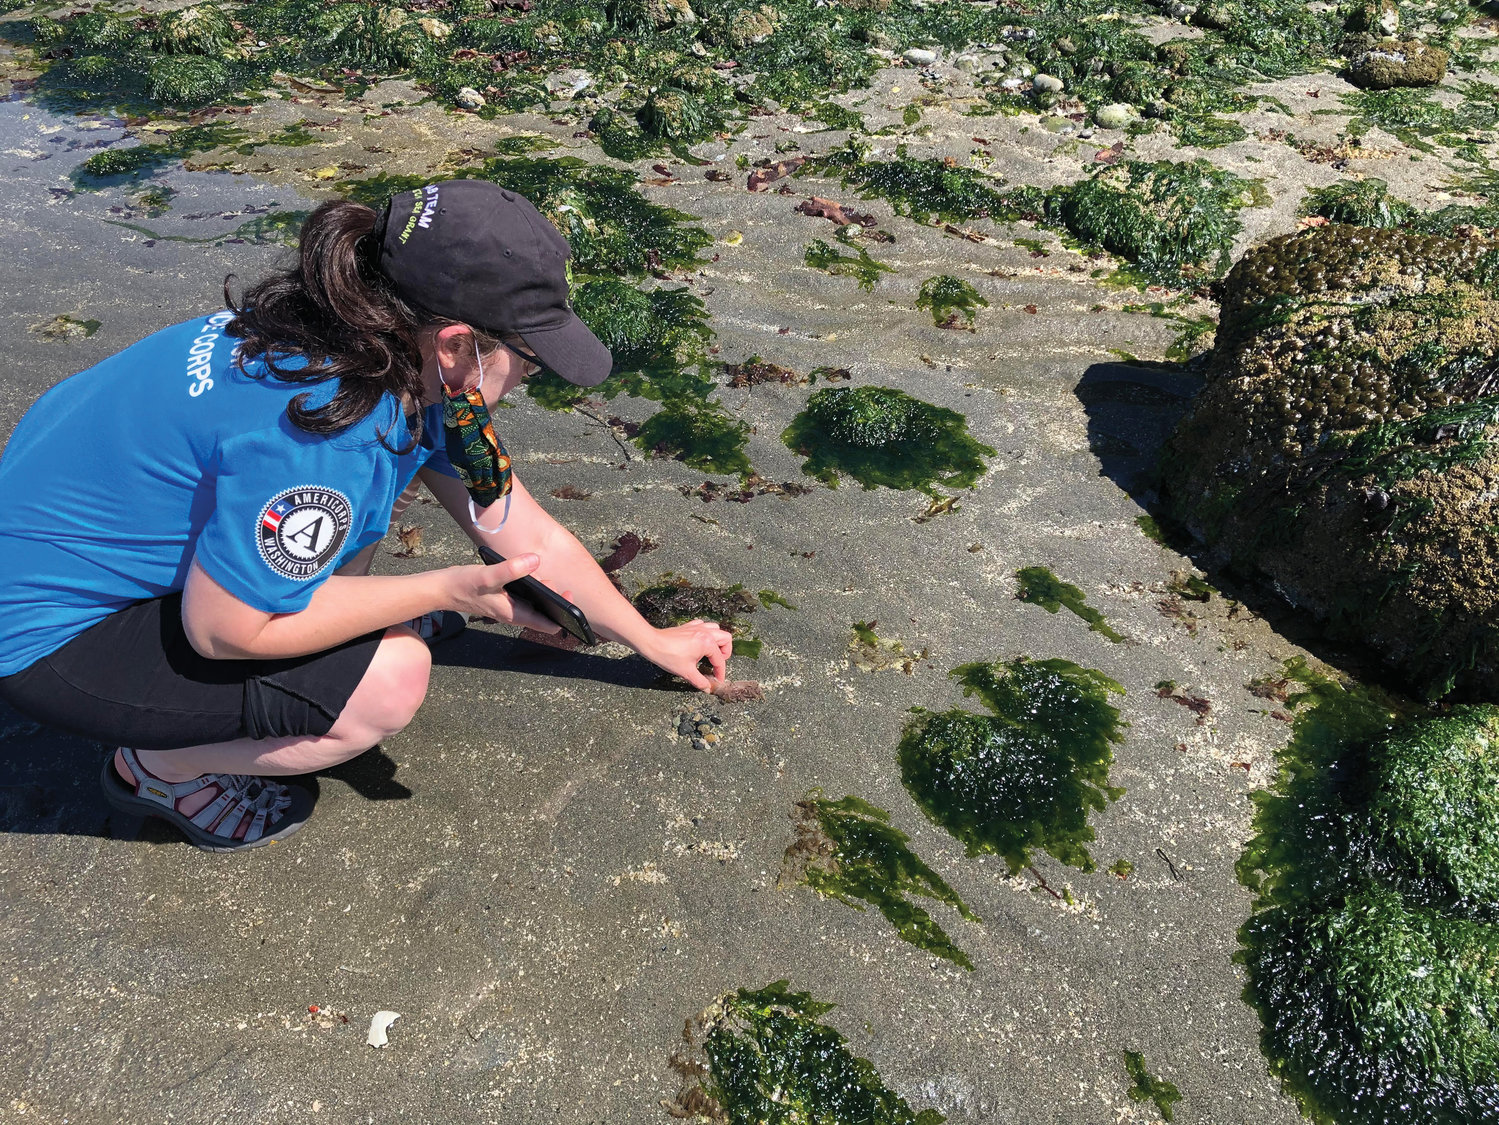 Heather Conkerton, Americorps aquatic reserves monitoring and stewardship coordinator for RE Sources, uses the iNaturalist app to identify marine species at Point Whitehorn Marine Reserve.